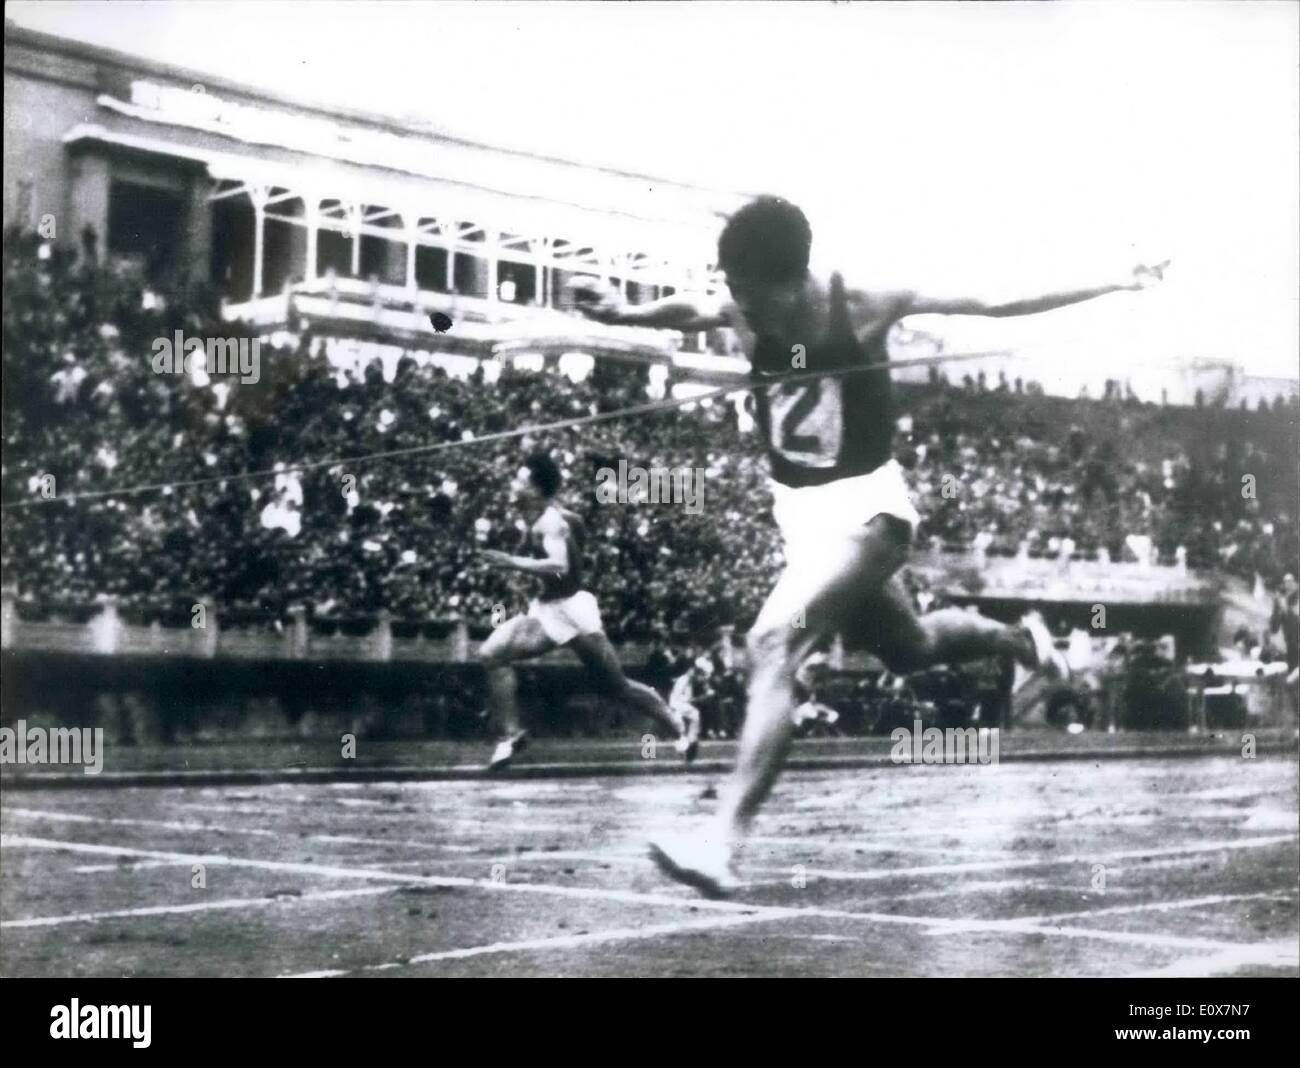 Sep. 09, 1965 - Chinese sprinter equals world record in Men 's 100 meter event: 27 years old Chinese sprinter Chen Stock Photo